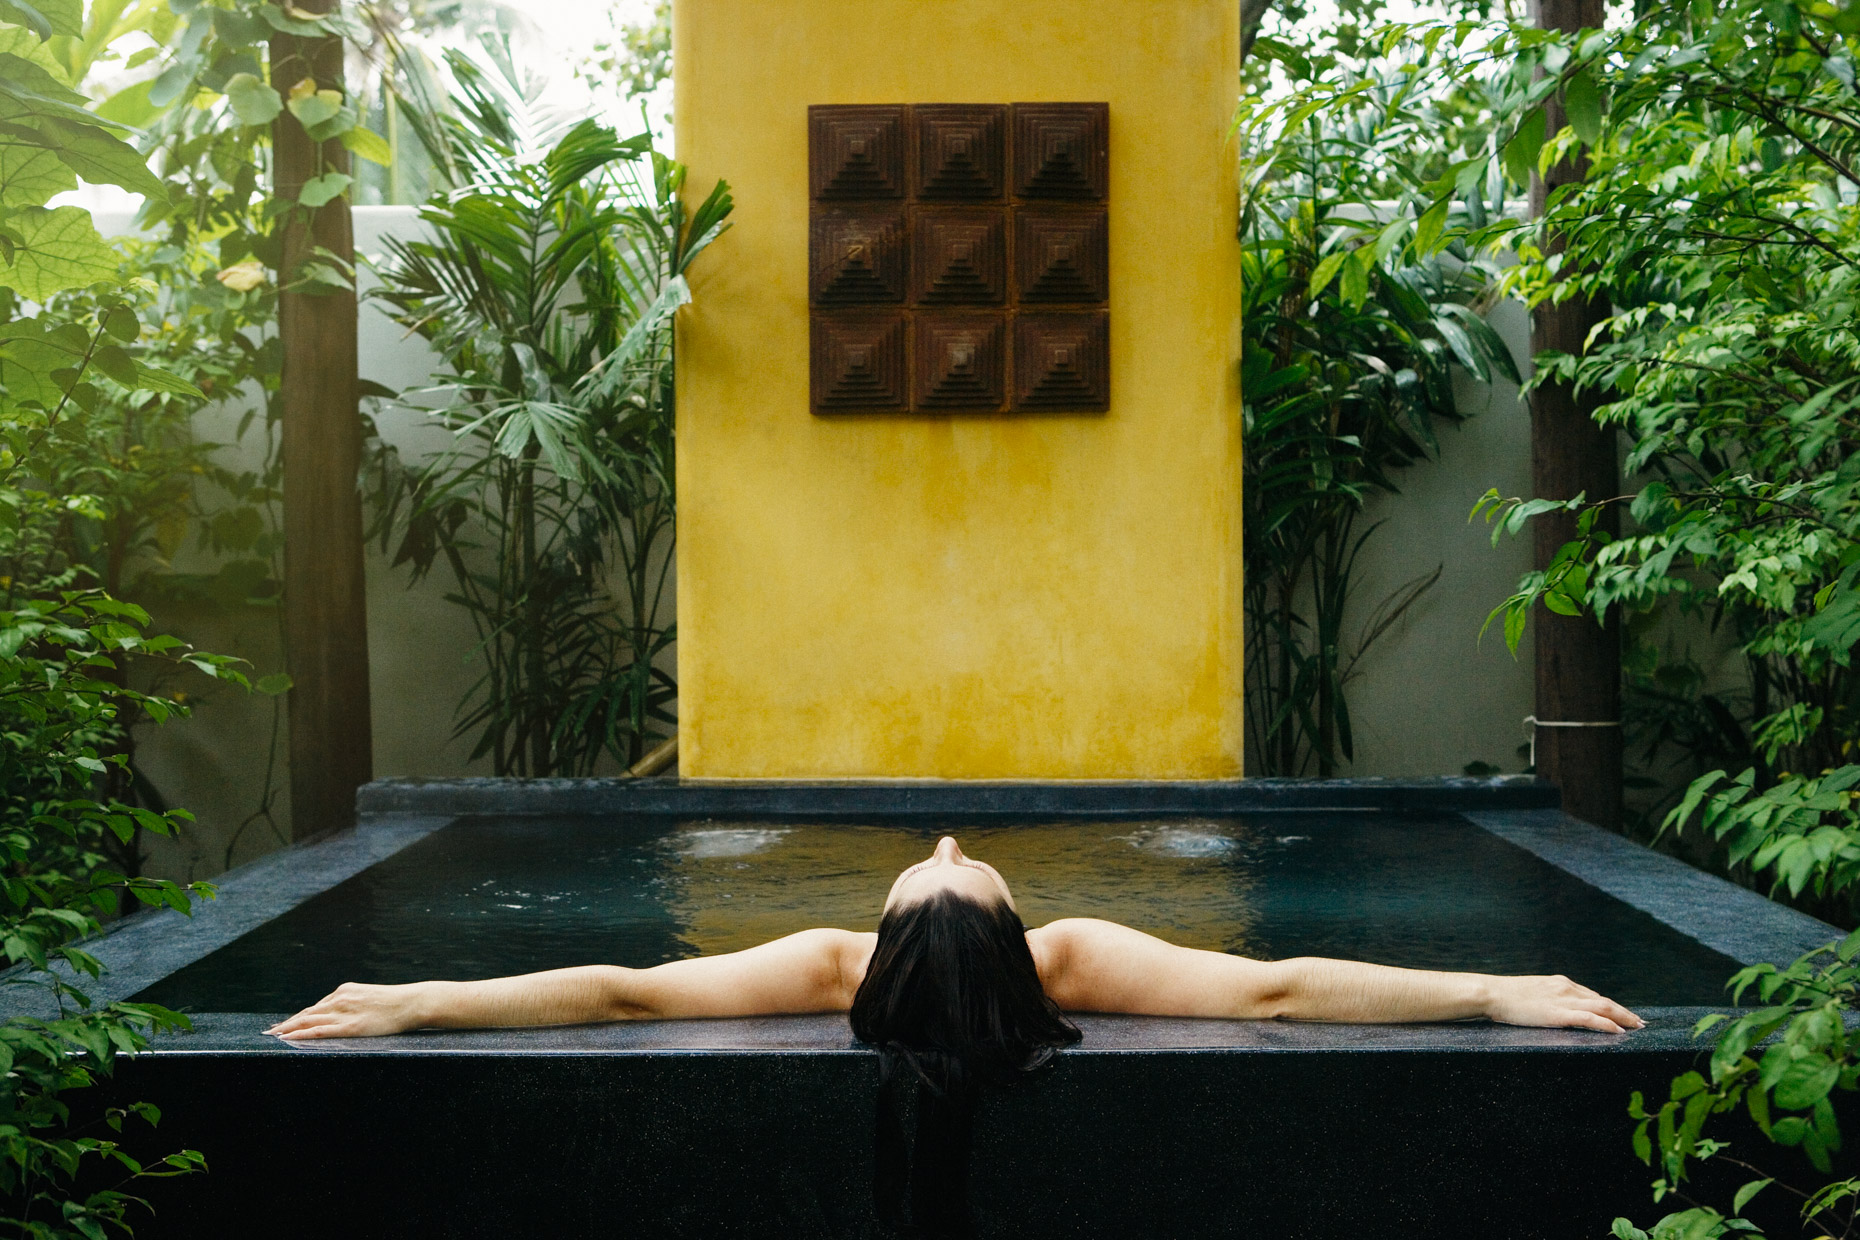 Woman relaxing in tub with arms outstretched in tropical garden